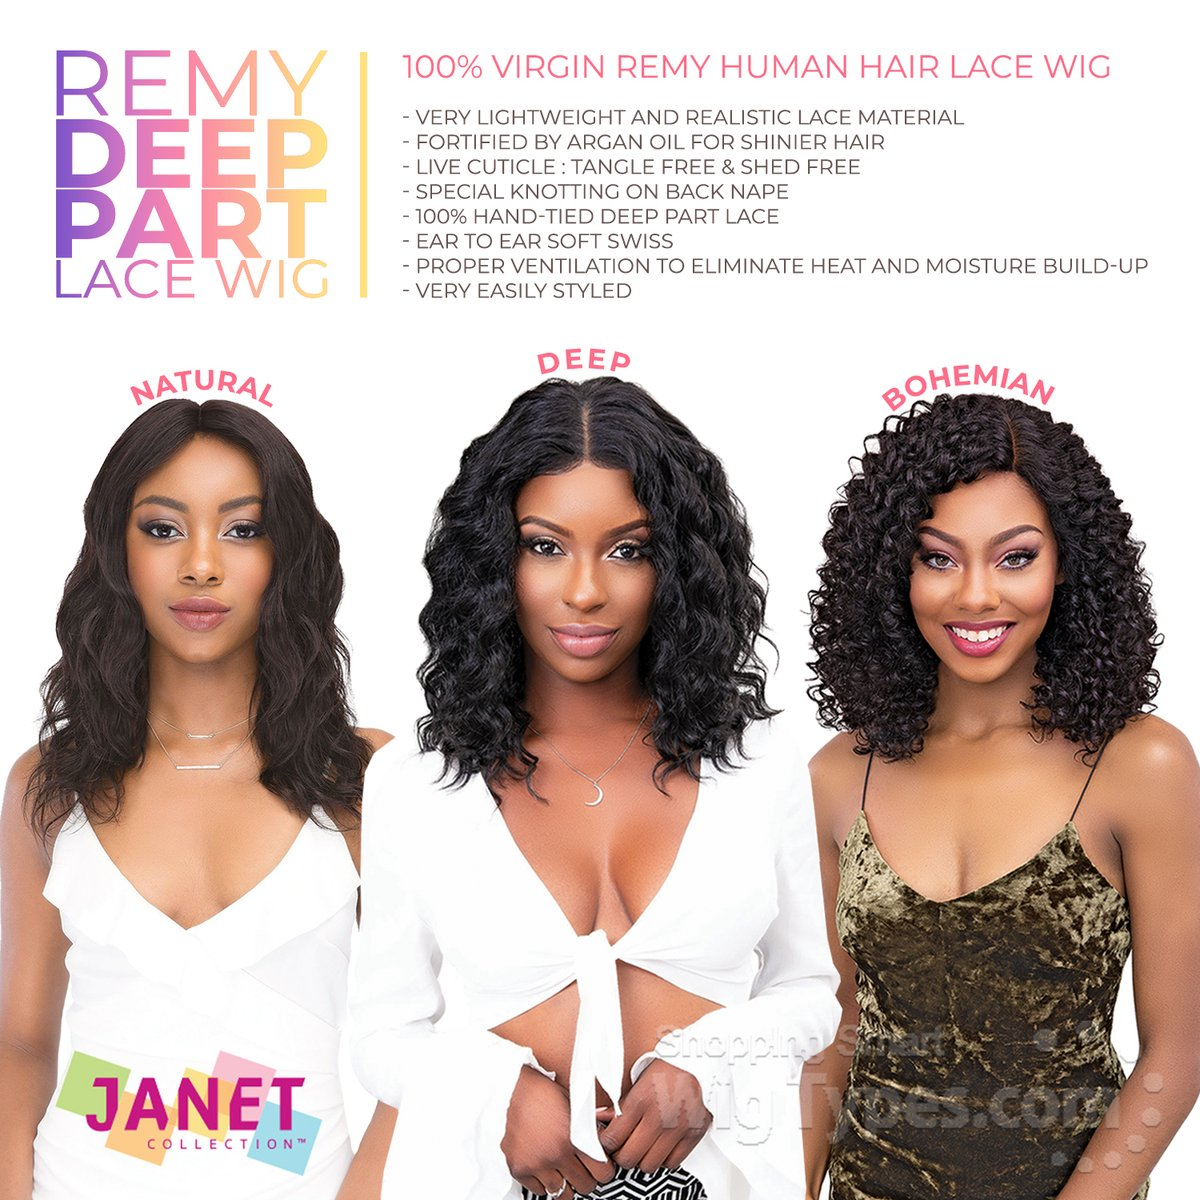 Janet Collection 100% Virgin Remy Human Hair Deep Part Lace Wigs (https://soo.nr/aHhP)  #wigtypes #wigtypesdotcom #protectivestyles #blackgirlhair #blackgirlmagic #lacefrontwig #HumanHair #janetcollection #remyhair #deep partwig #naturalwig #janetdeepwig #janetbohemianwigpic.twitter.com/GHdhoZ76xP